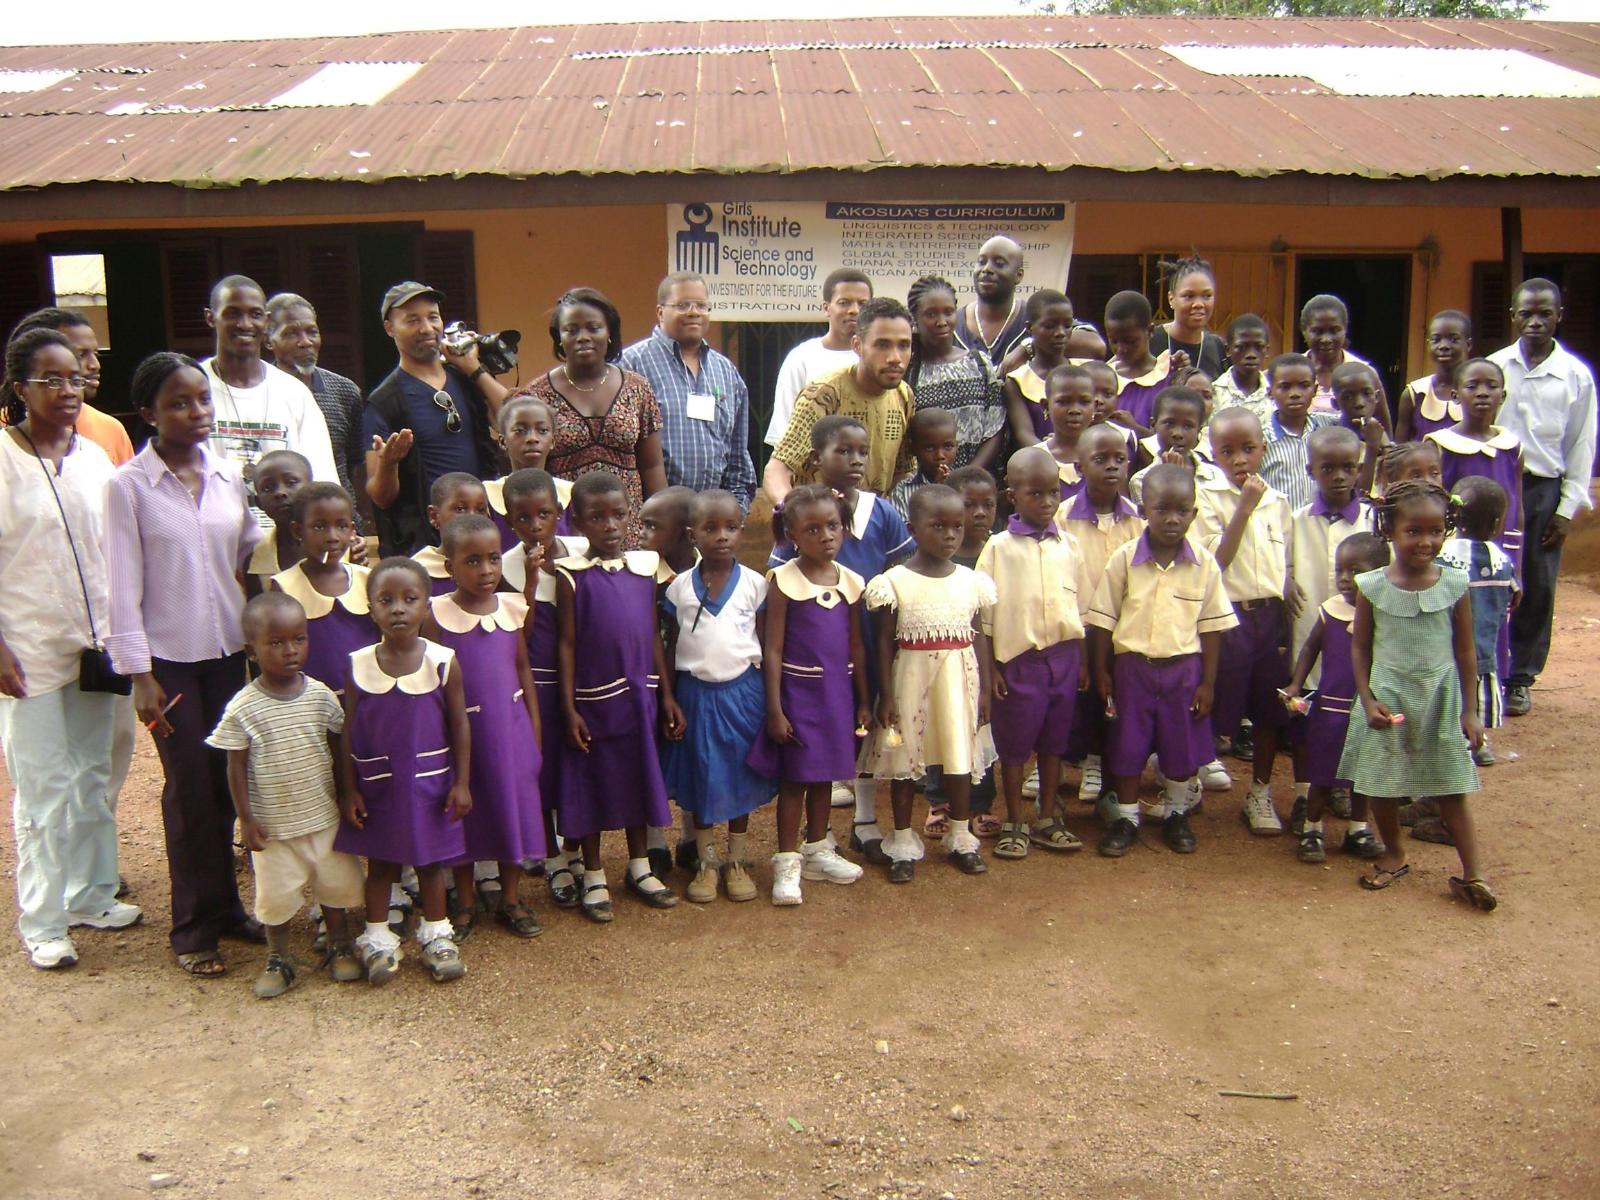 Socializing with the children of Africa